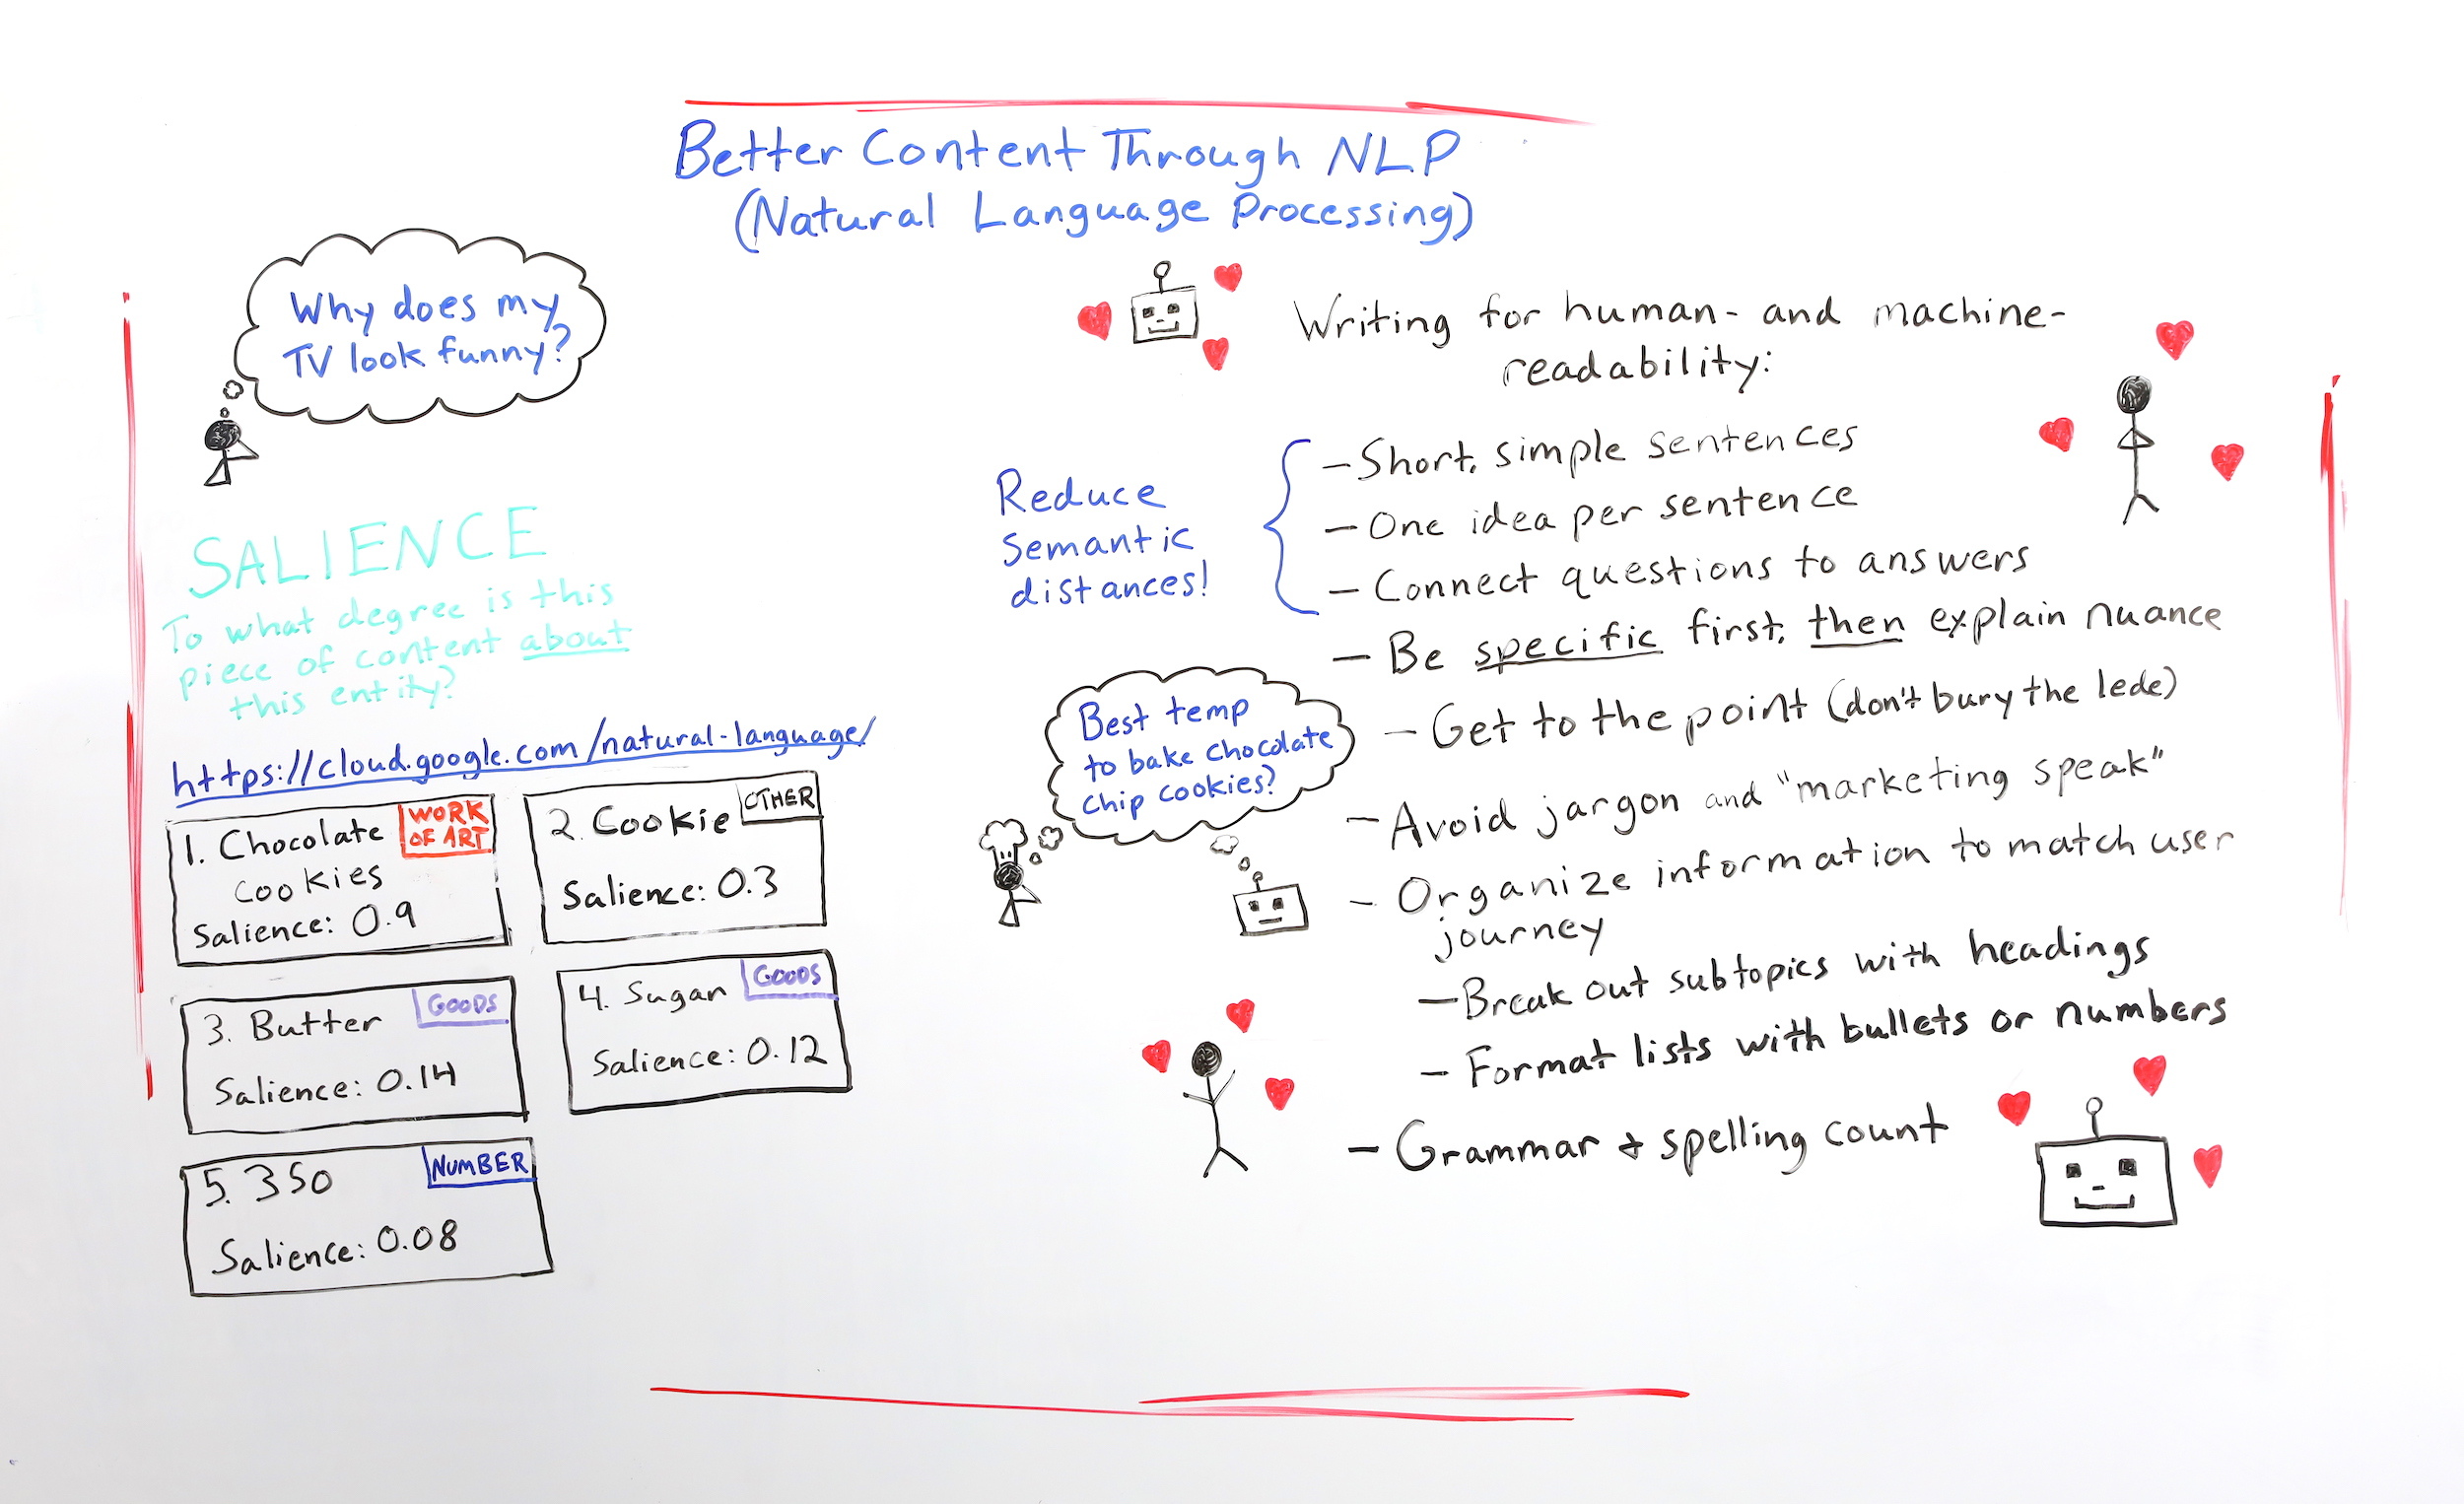 5dd761b0c48413.04534027 - Better Content Through NLP (Natural Language Processing) - Whiteboard Friday